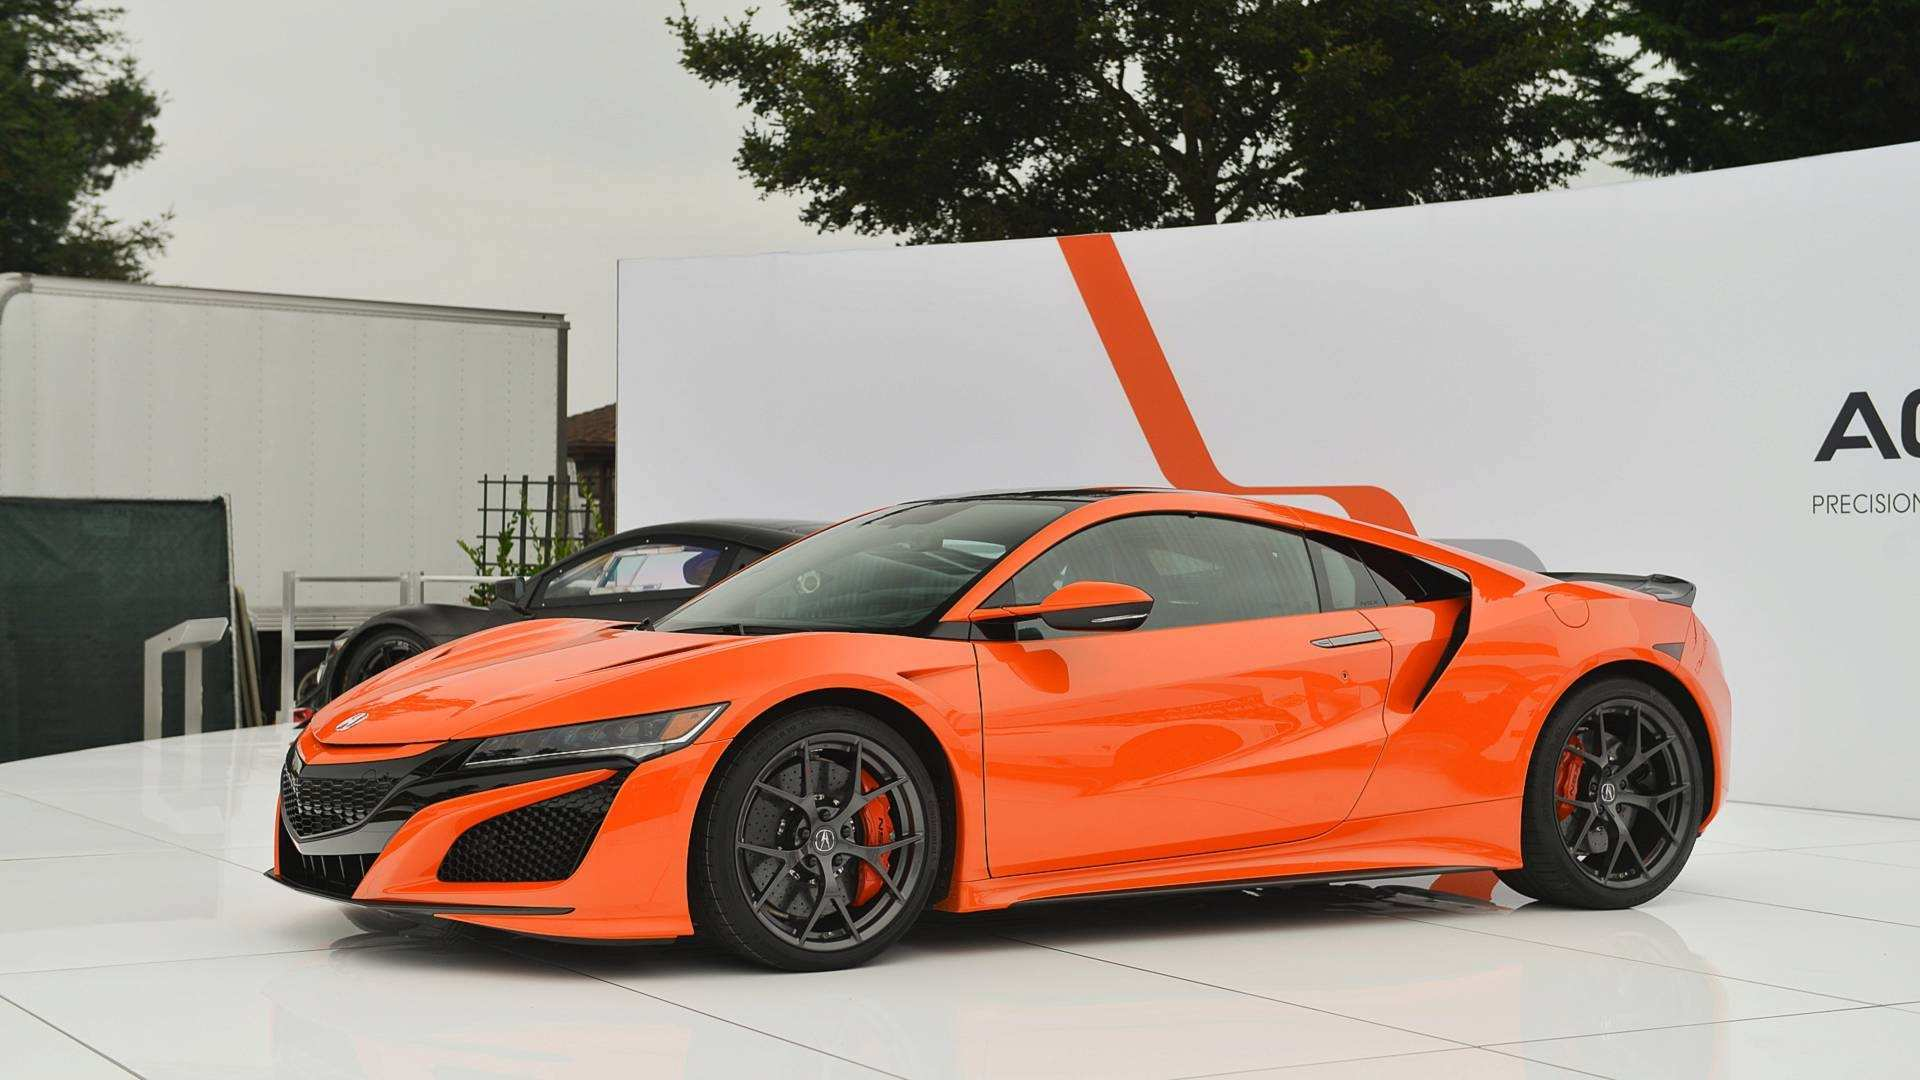 67 All New New 2019 Acura Nsx Msrp Picture Release Date And Review Concept by New 2019 Acura Nsx Msrp Picture Release Date And Review